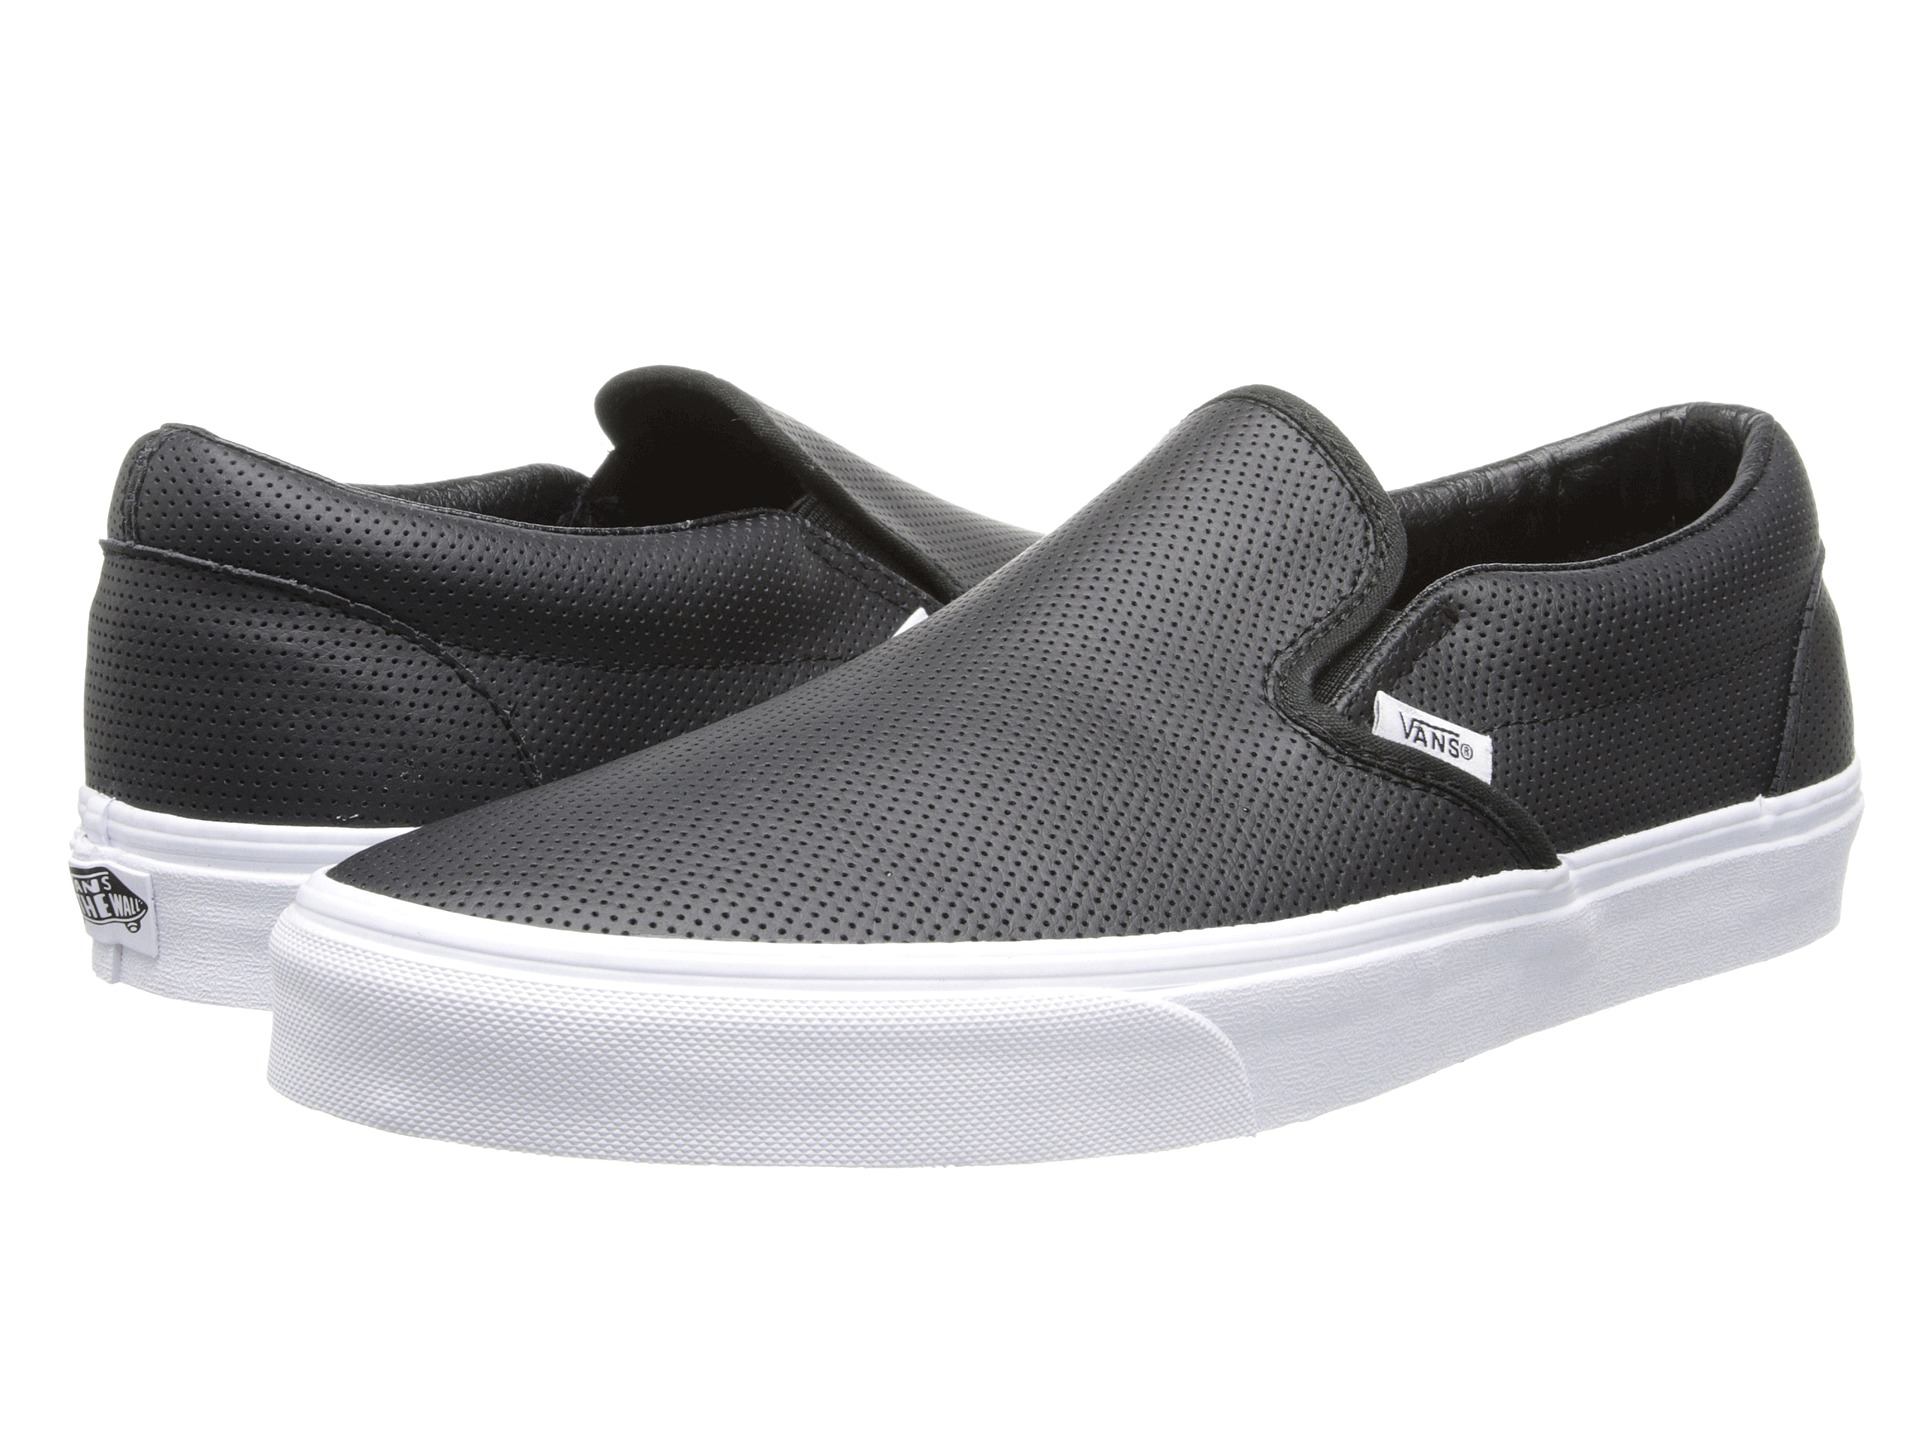 vans classic slip on perf leather black free shipping both ways. Black Bedroom Furniture Sets. Home Design Ideas